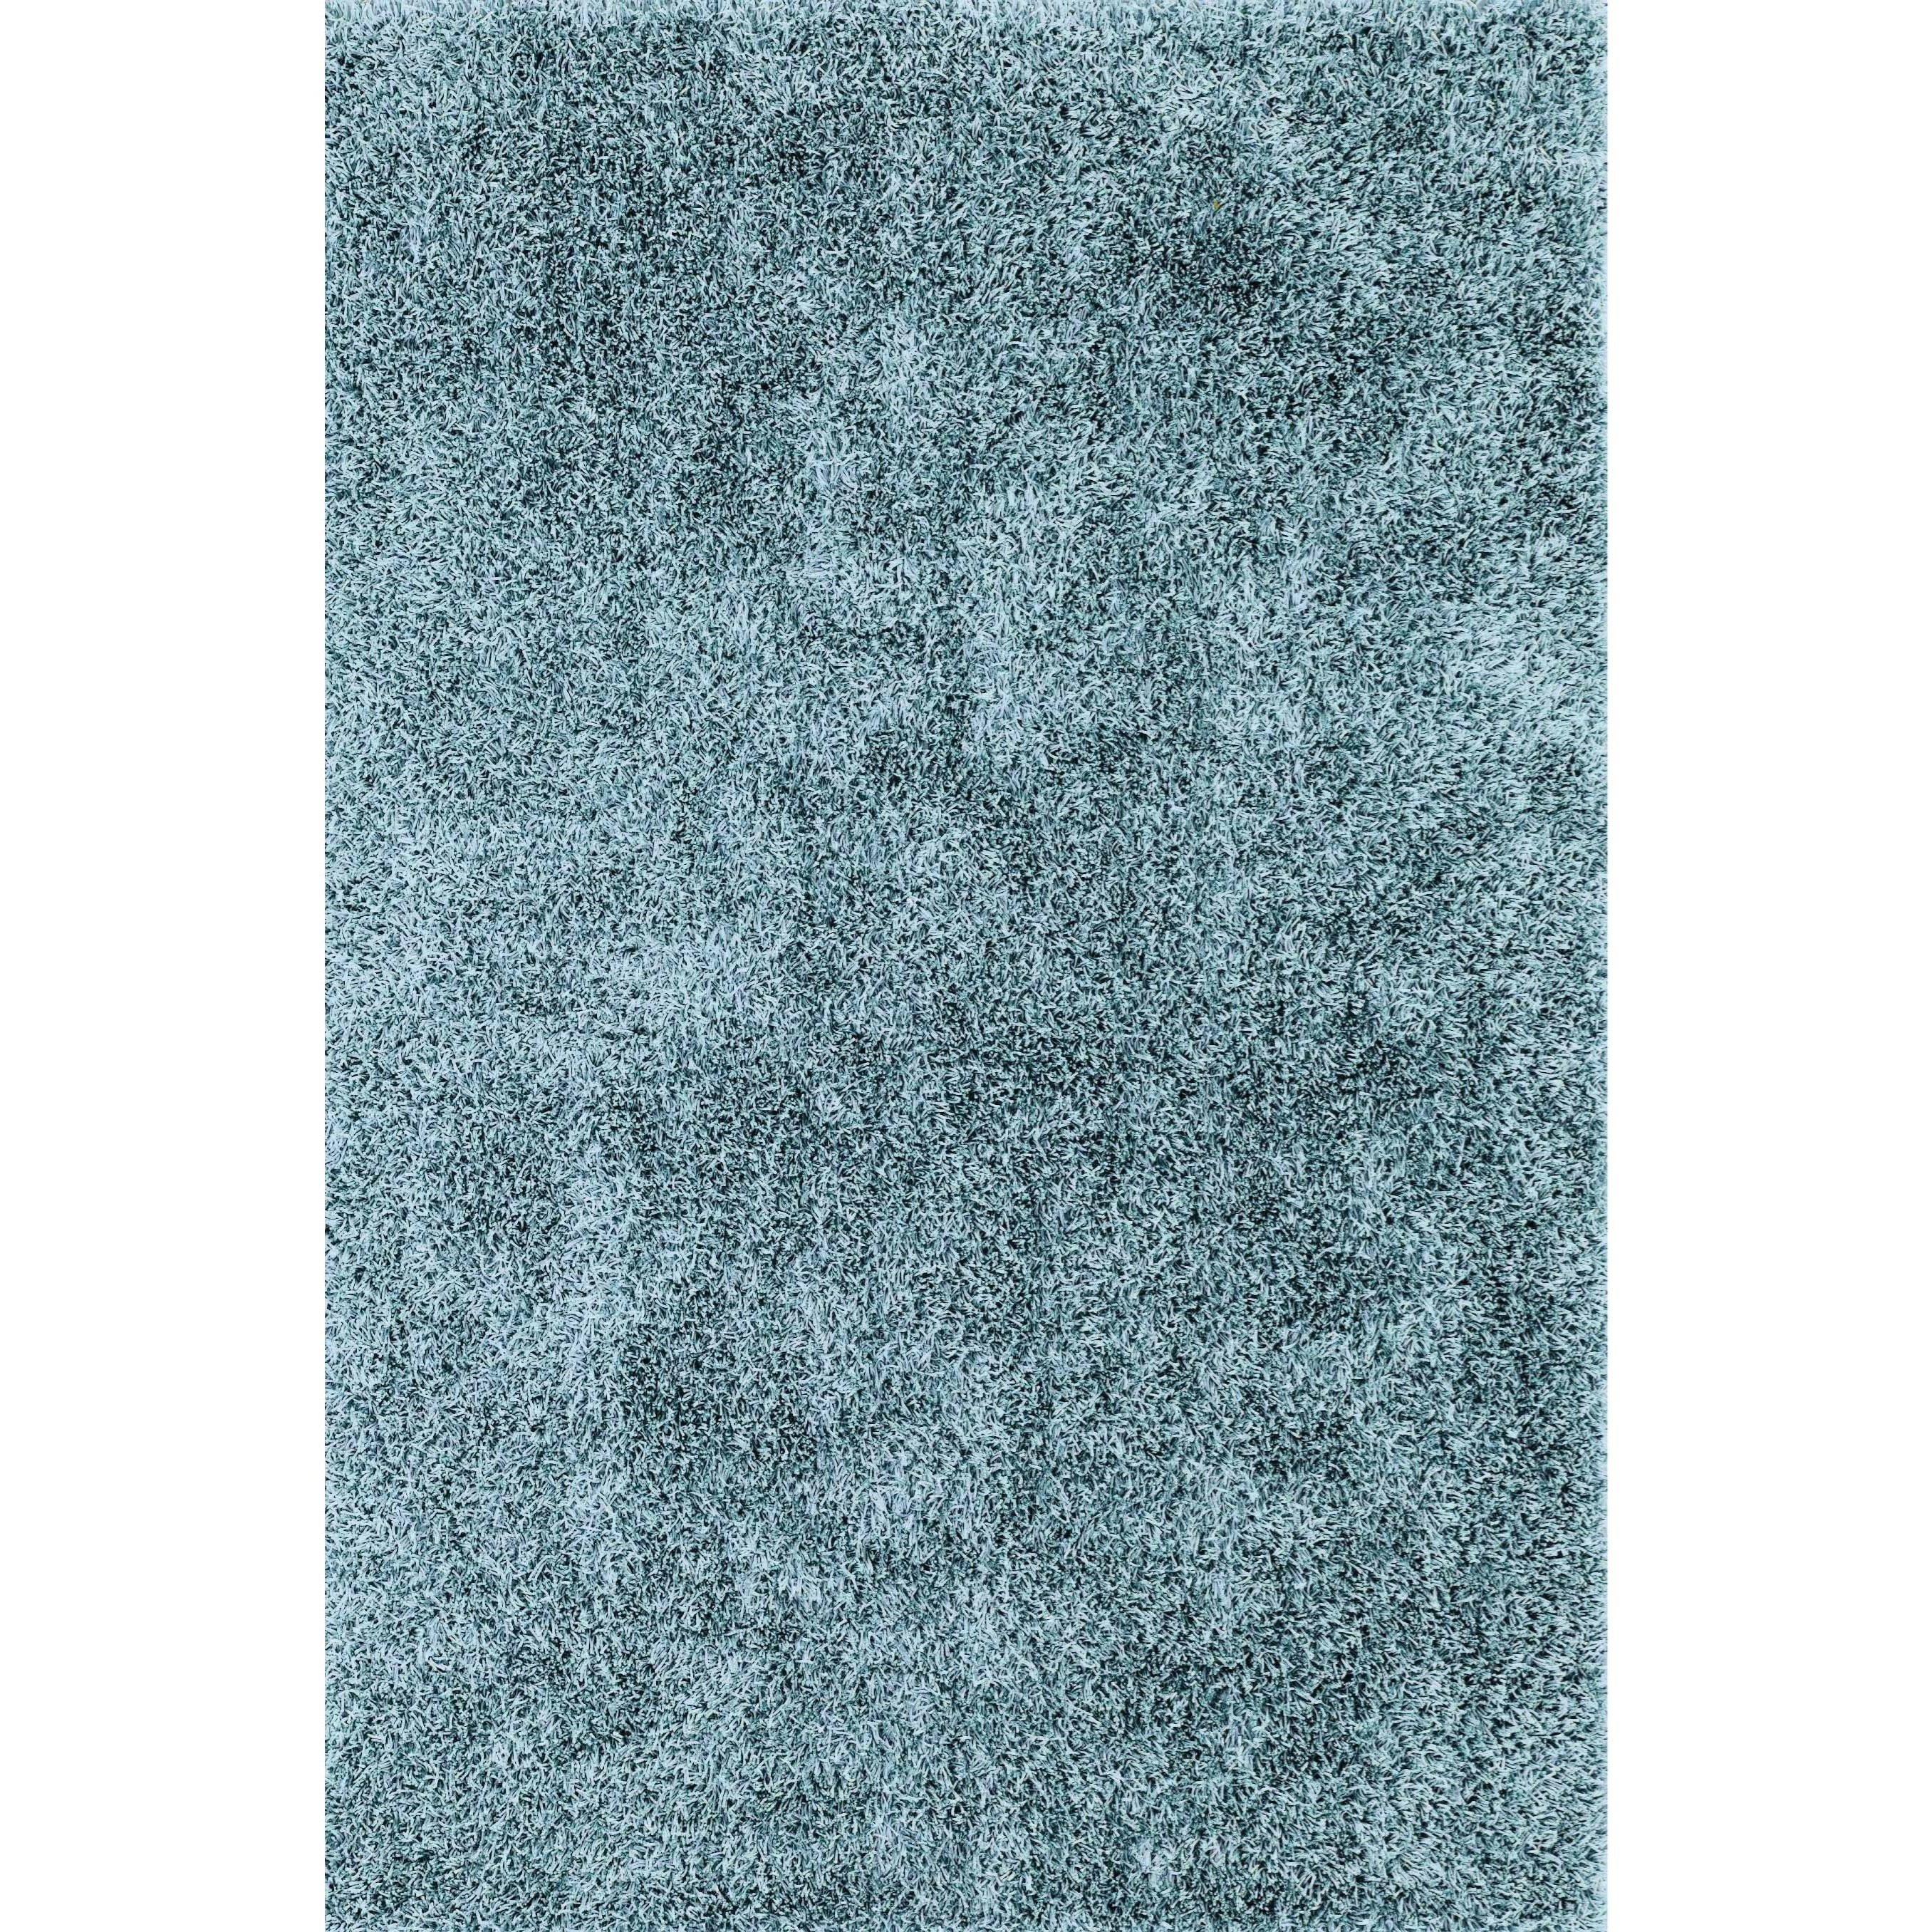 Dalyn Illusions Sky Blue 9X13 Rug - Item Number: IL69SB9X13